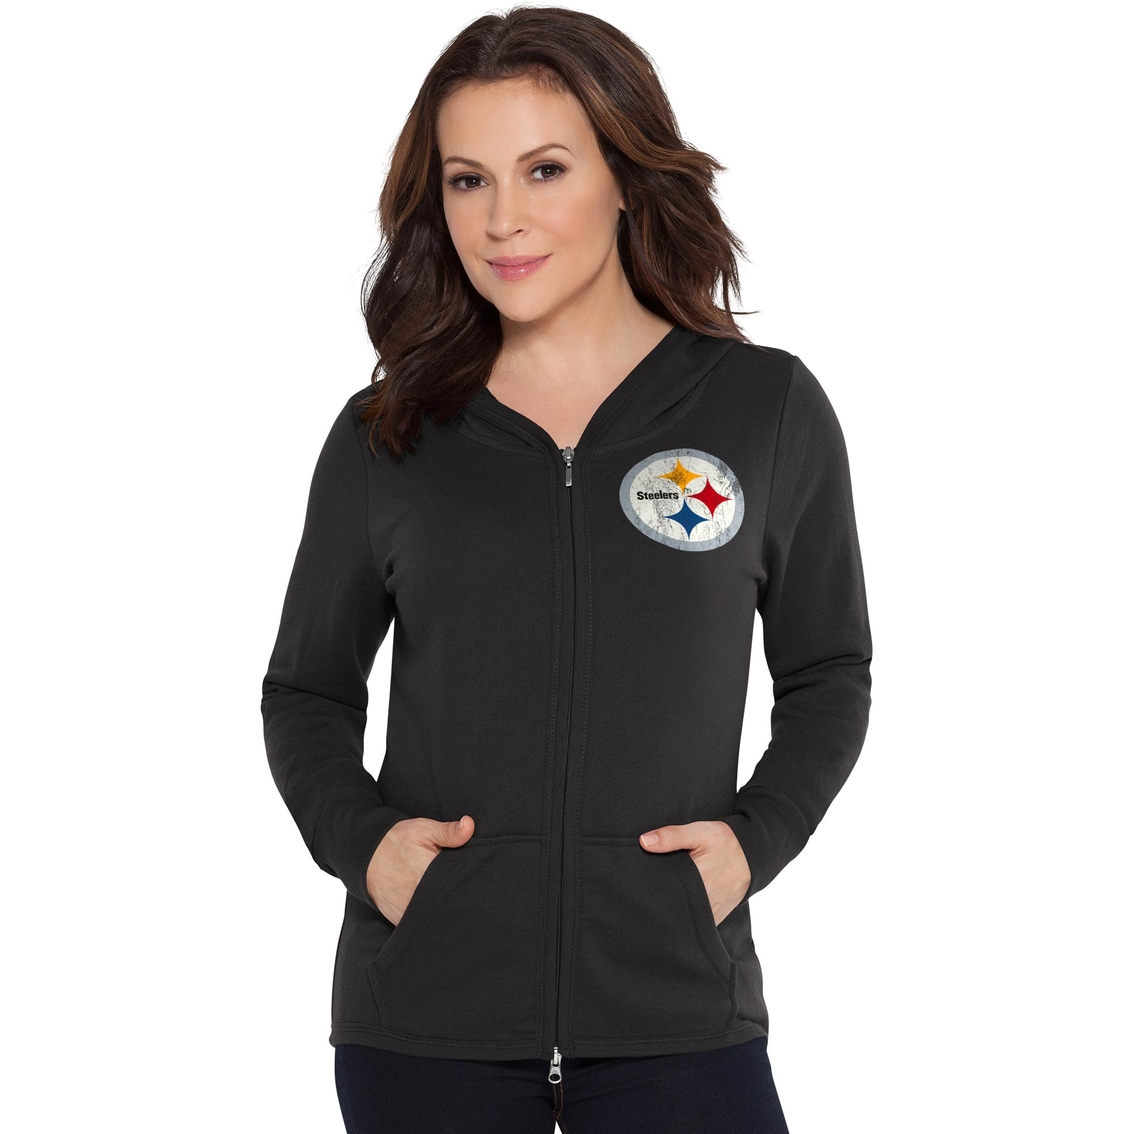 Touch By Alyssa Milano Nfl Pittsburgh Steelers Women s Tackle Hoodie ... 49f5090ab0